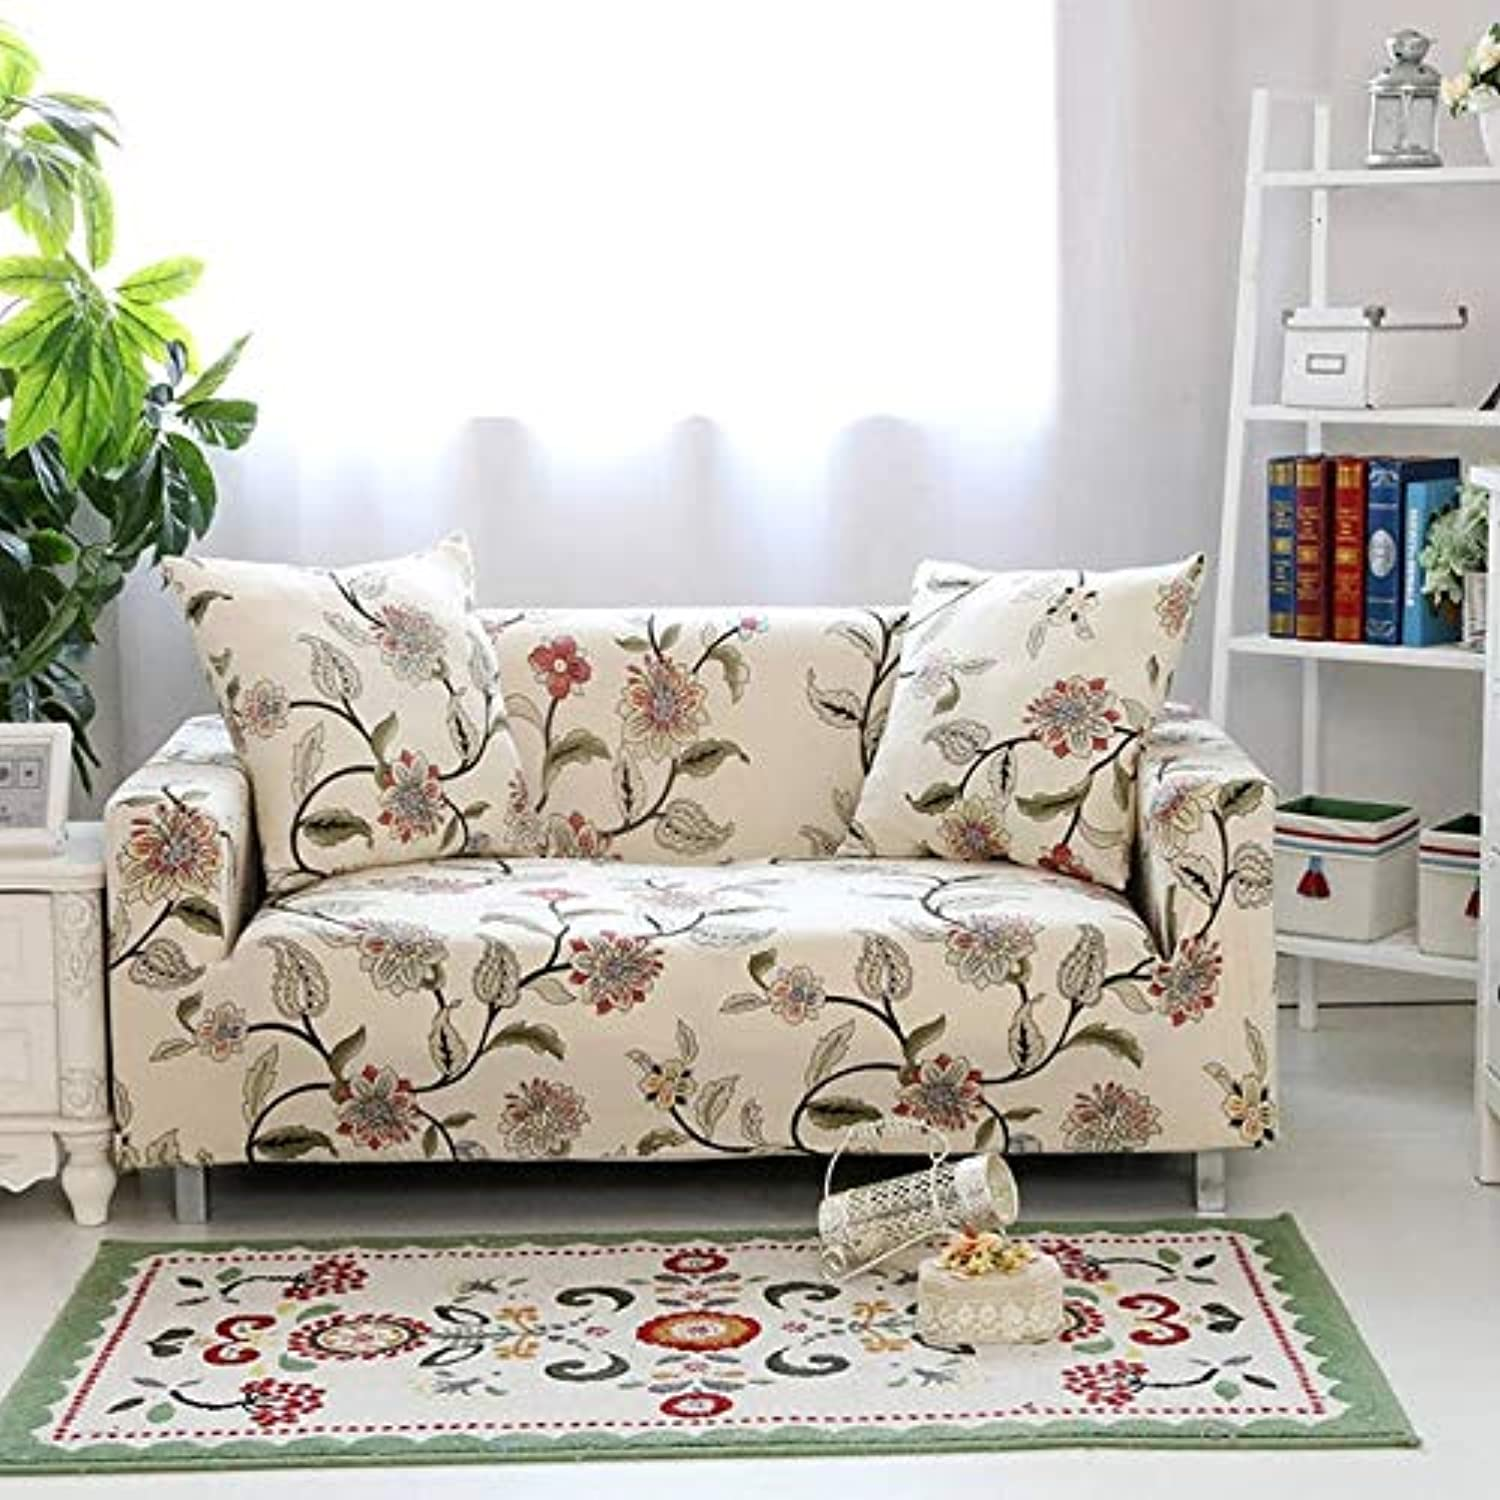 Floral Printing Stretch Elastic Sofa Cover Cotton Sofa Towel Slip-Resistant Sofa Covers for Living Room   colour3, Two-Seater